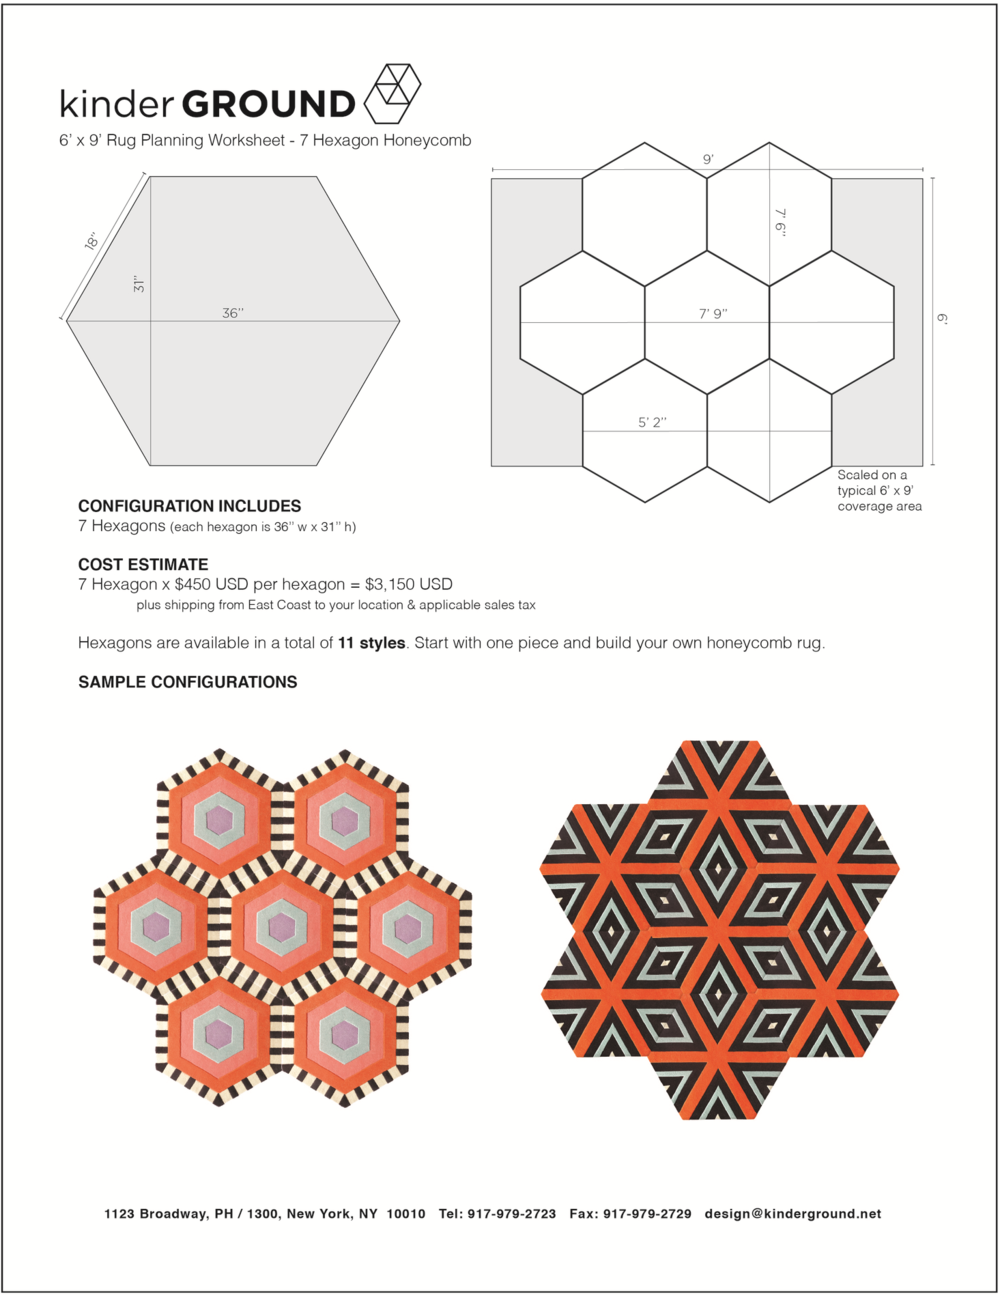 7-Hexagon Honeycomb